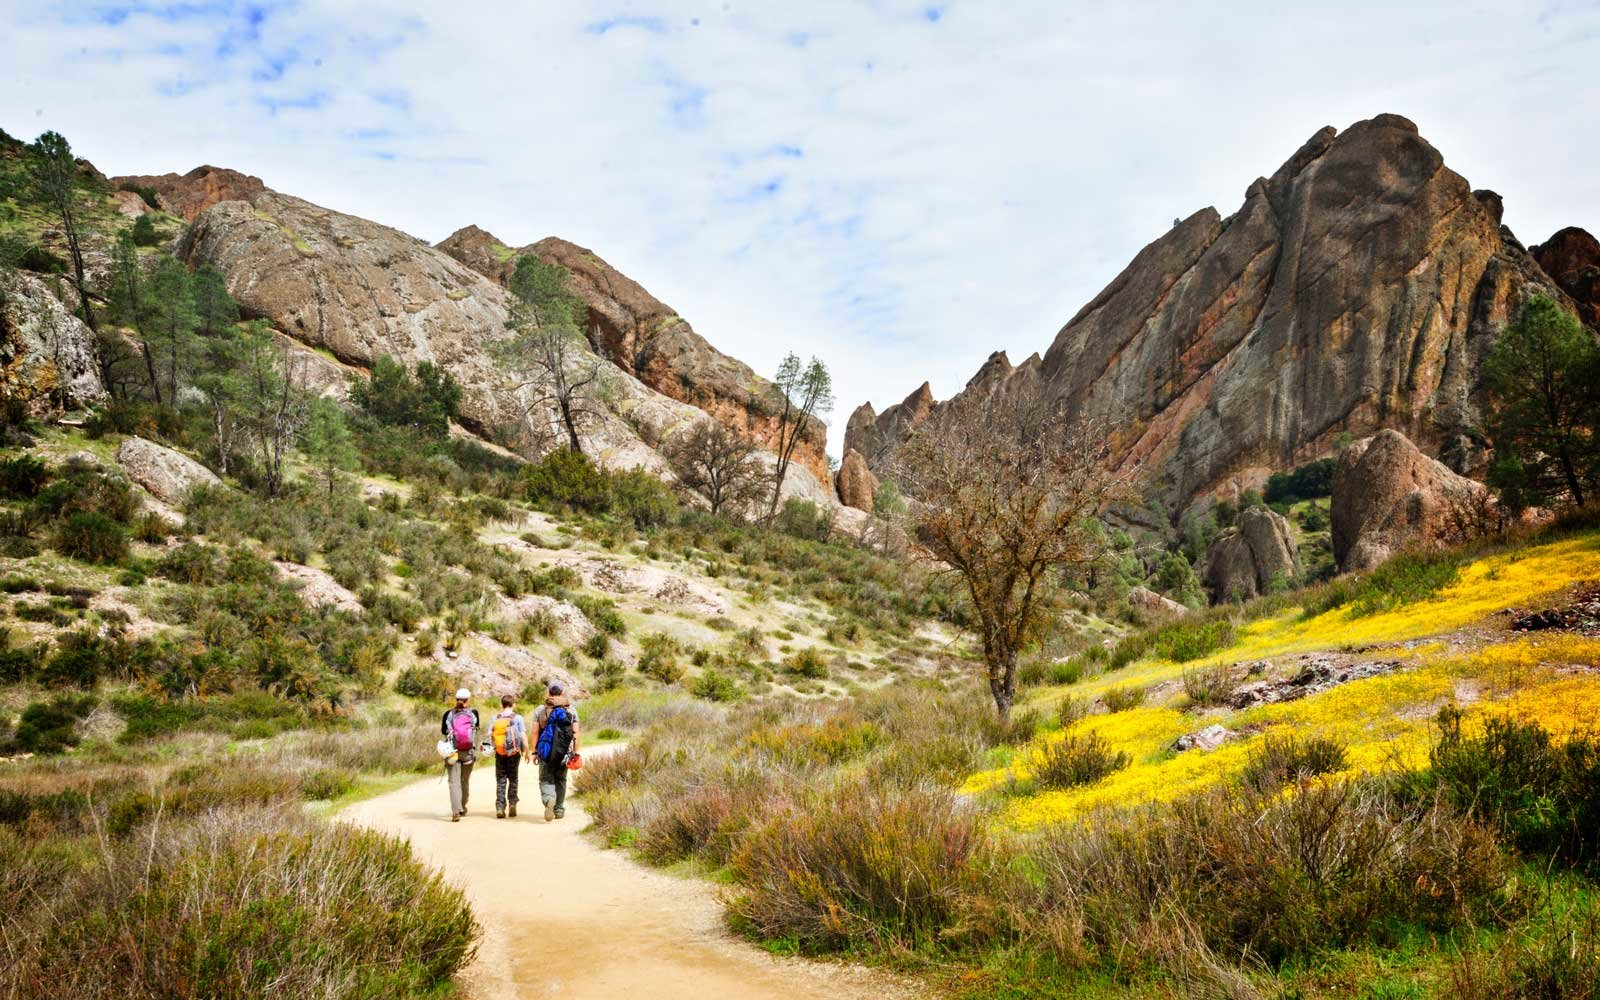 Rock climbing and cave exploring are popular activities visitors can enjoy at Pinnacles National Park.